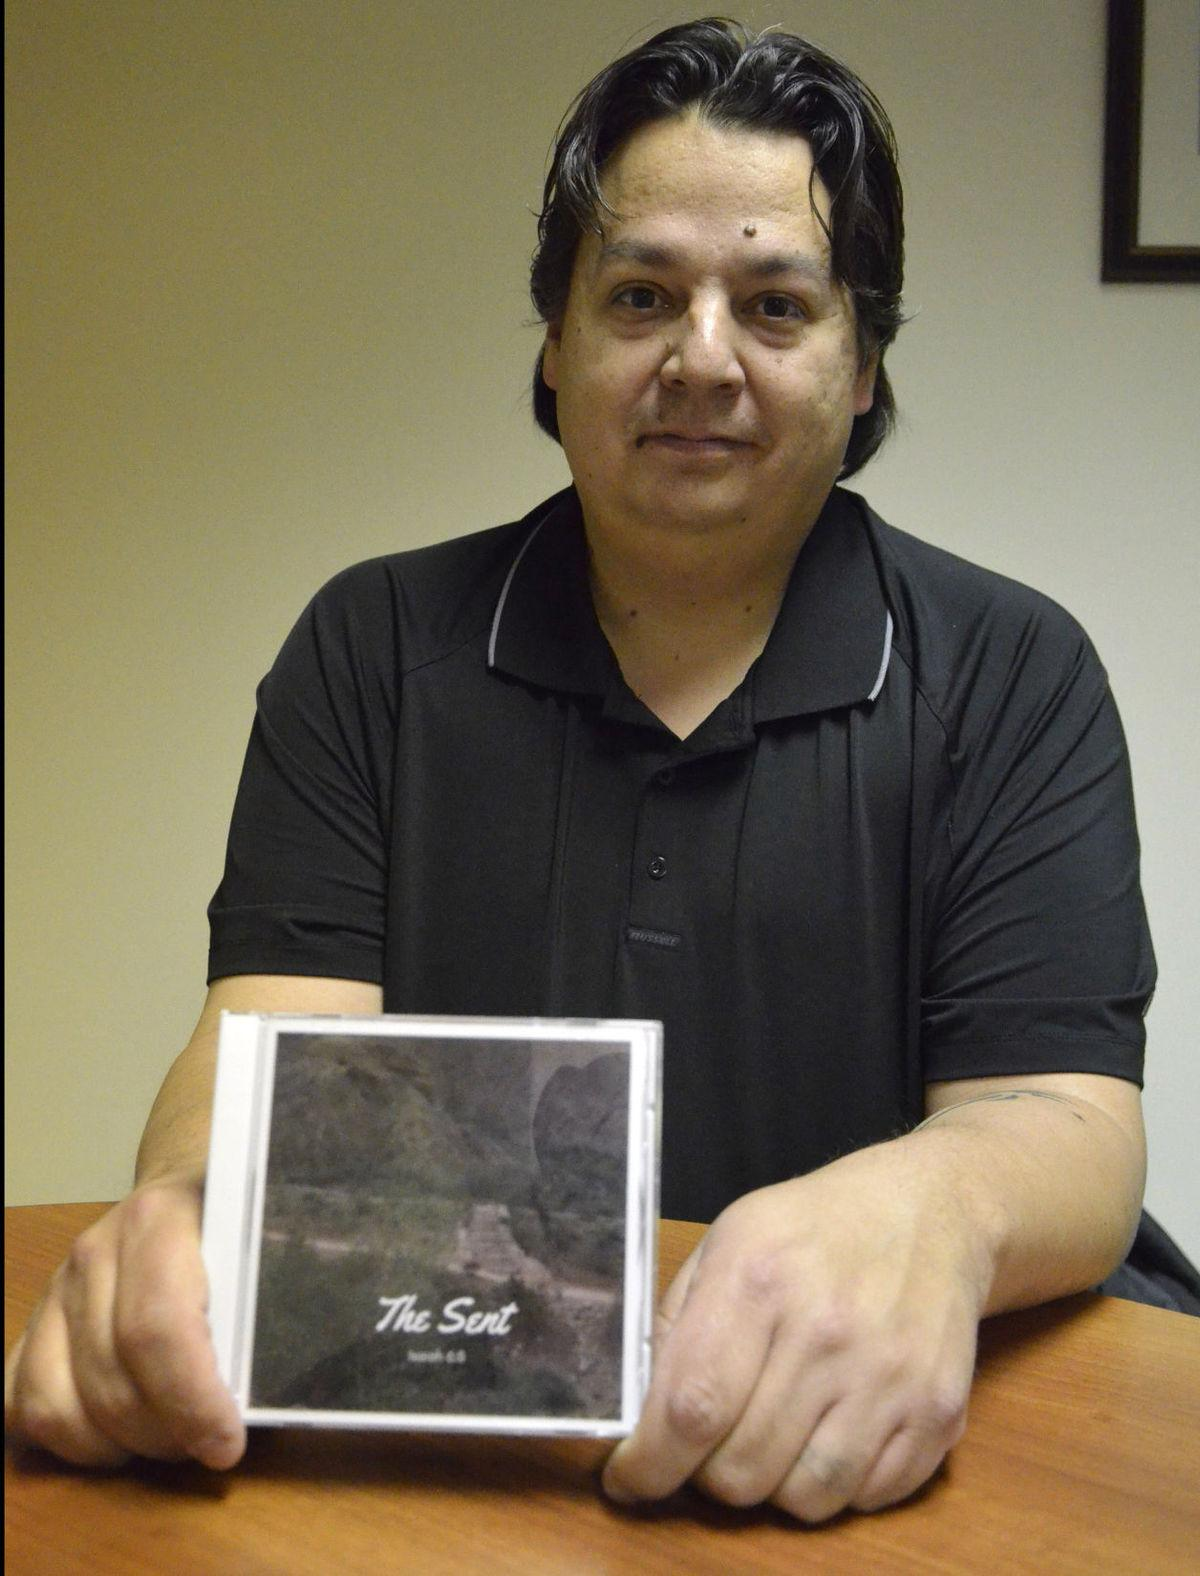 The columbus Telegram*/<b>Chris Robbins holds a copy of a CD featuring The Sent, the praise and worship band at 1C Church. Robbins is the band leader. The self-titled debut album features eight contemporary christian songs. Proceeds from the album will go towards future church projects.</b>